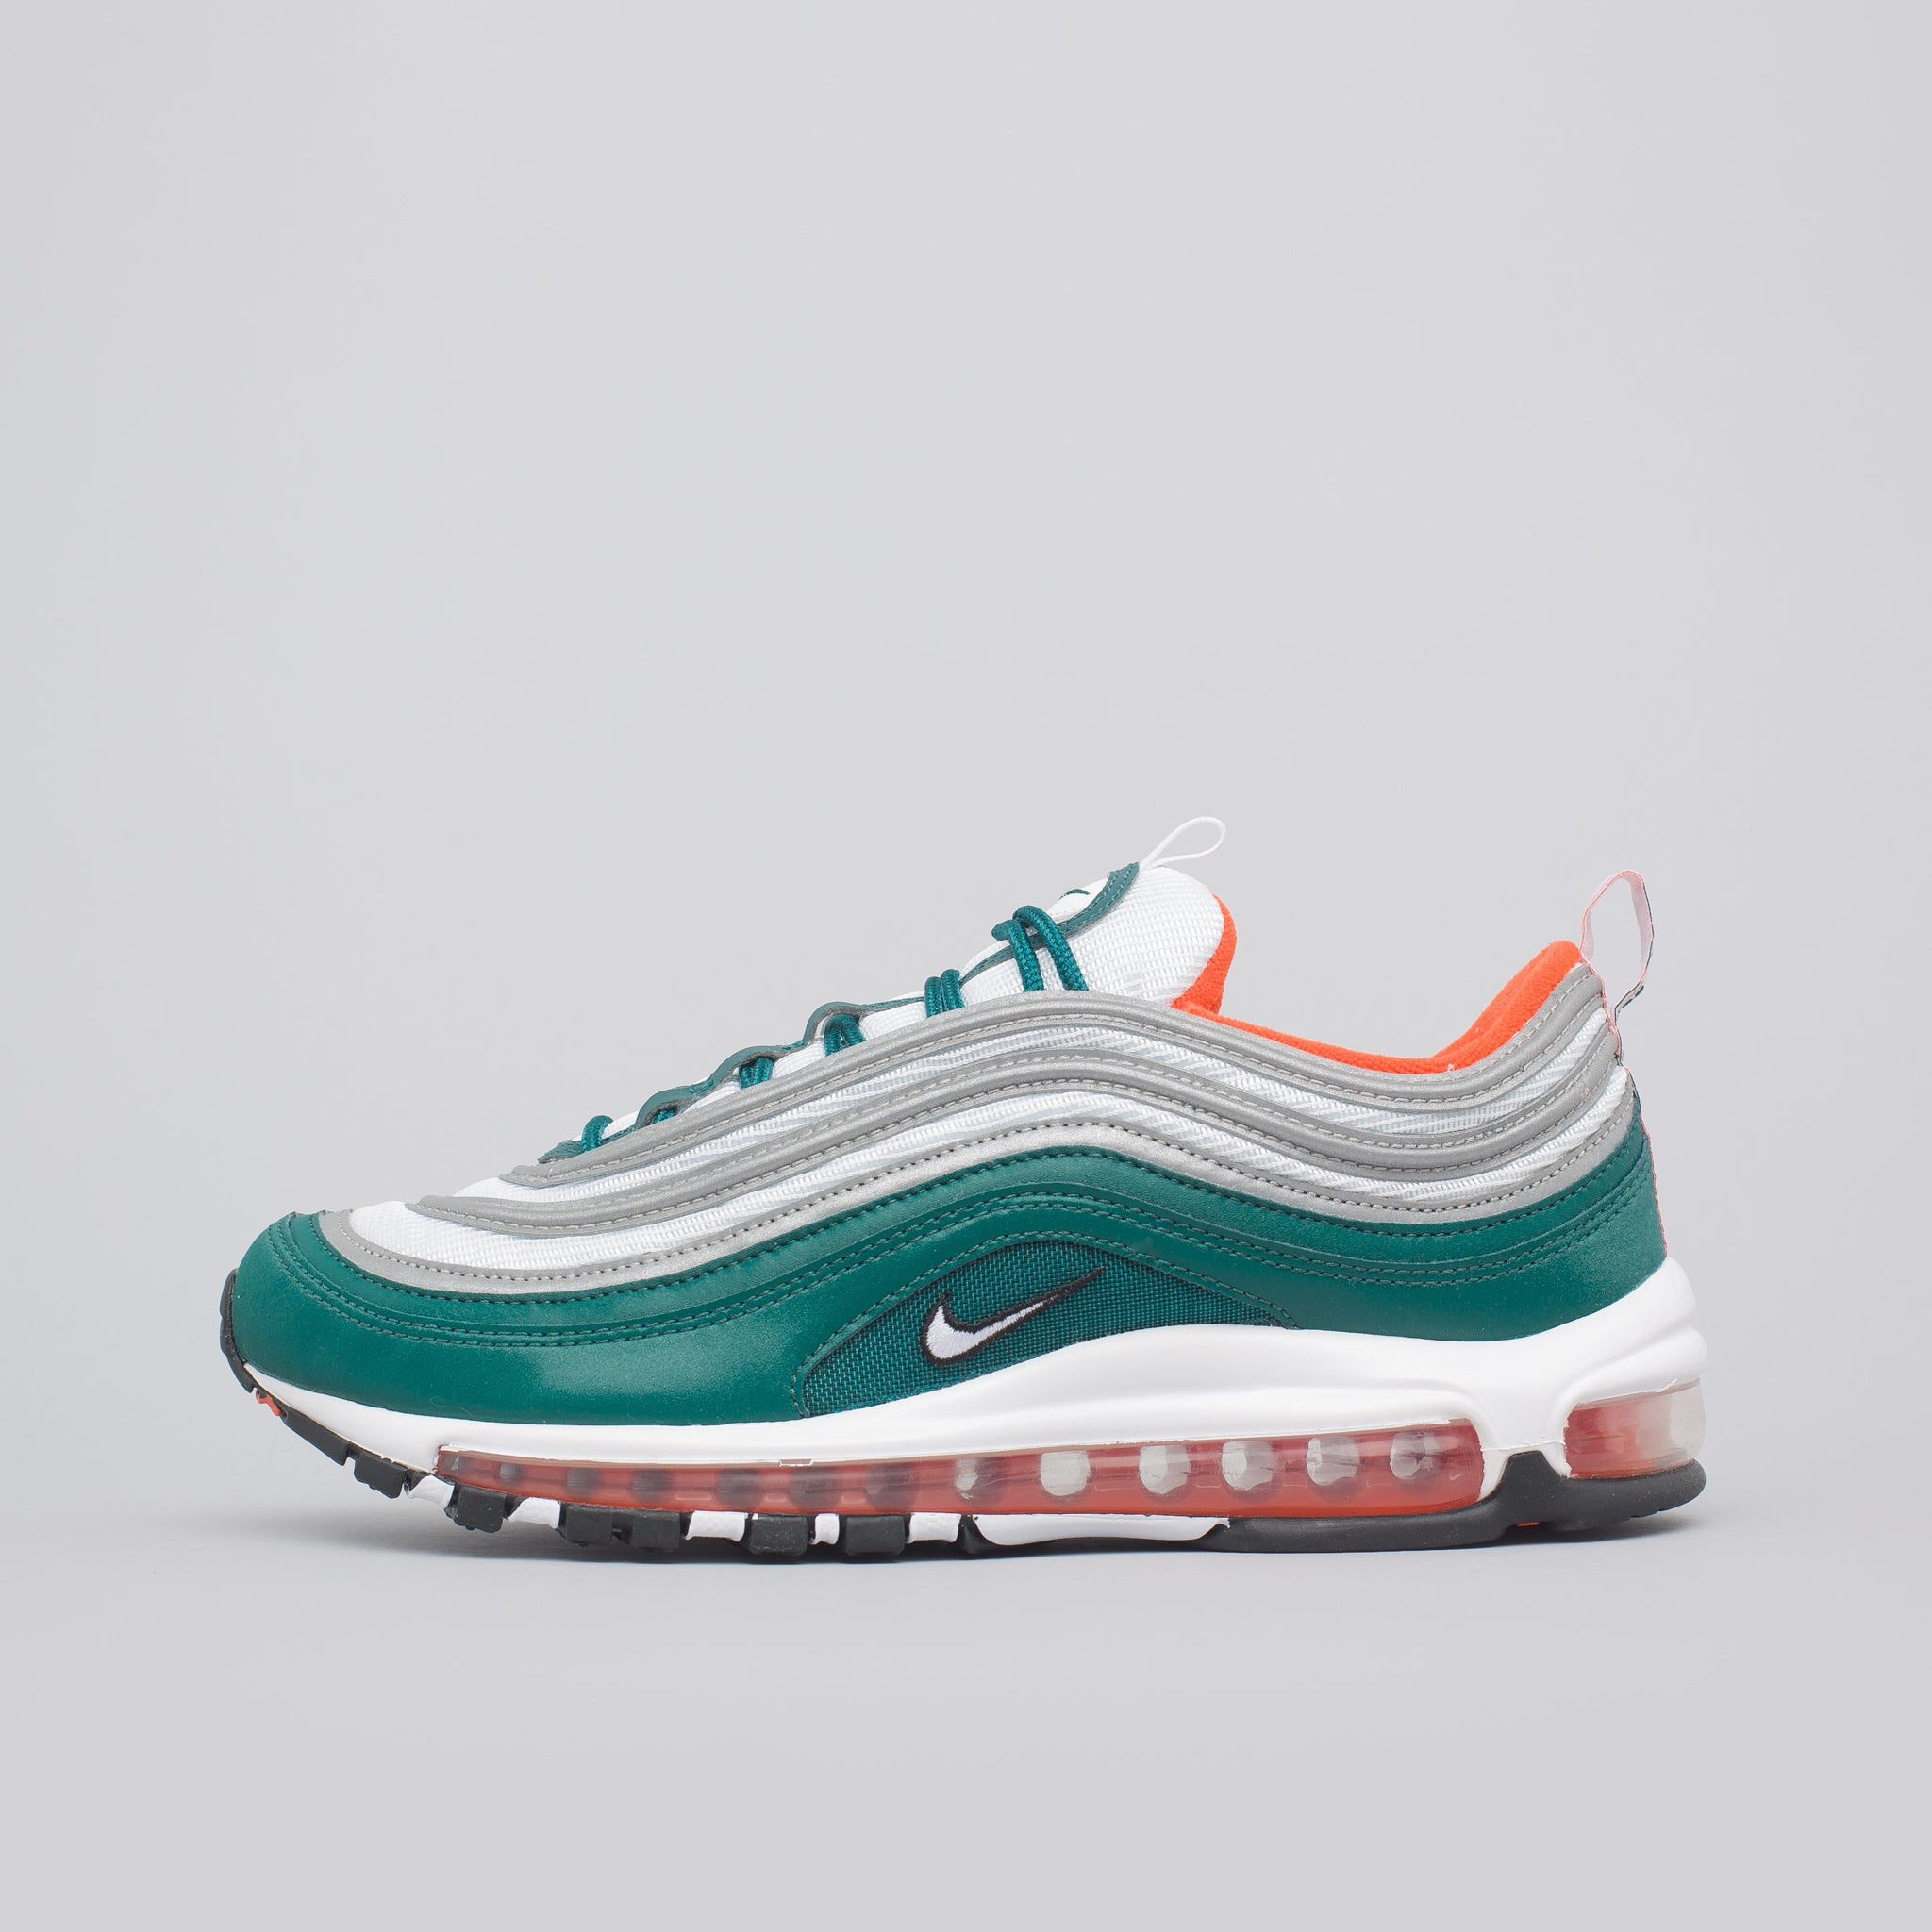 Air Max 97 in Rainforest